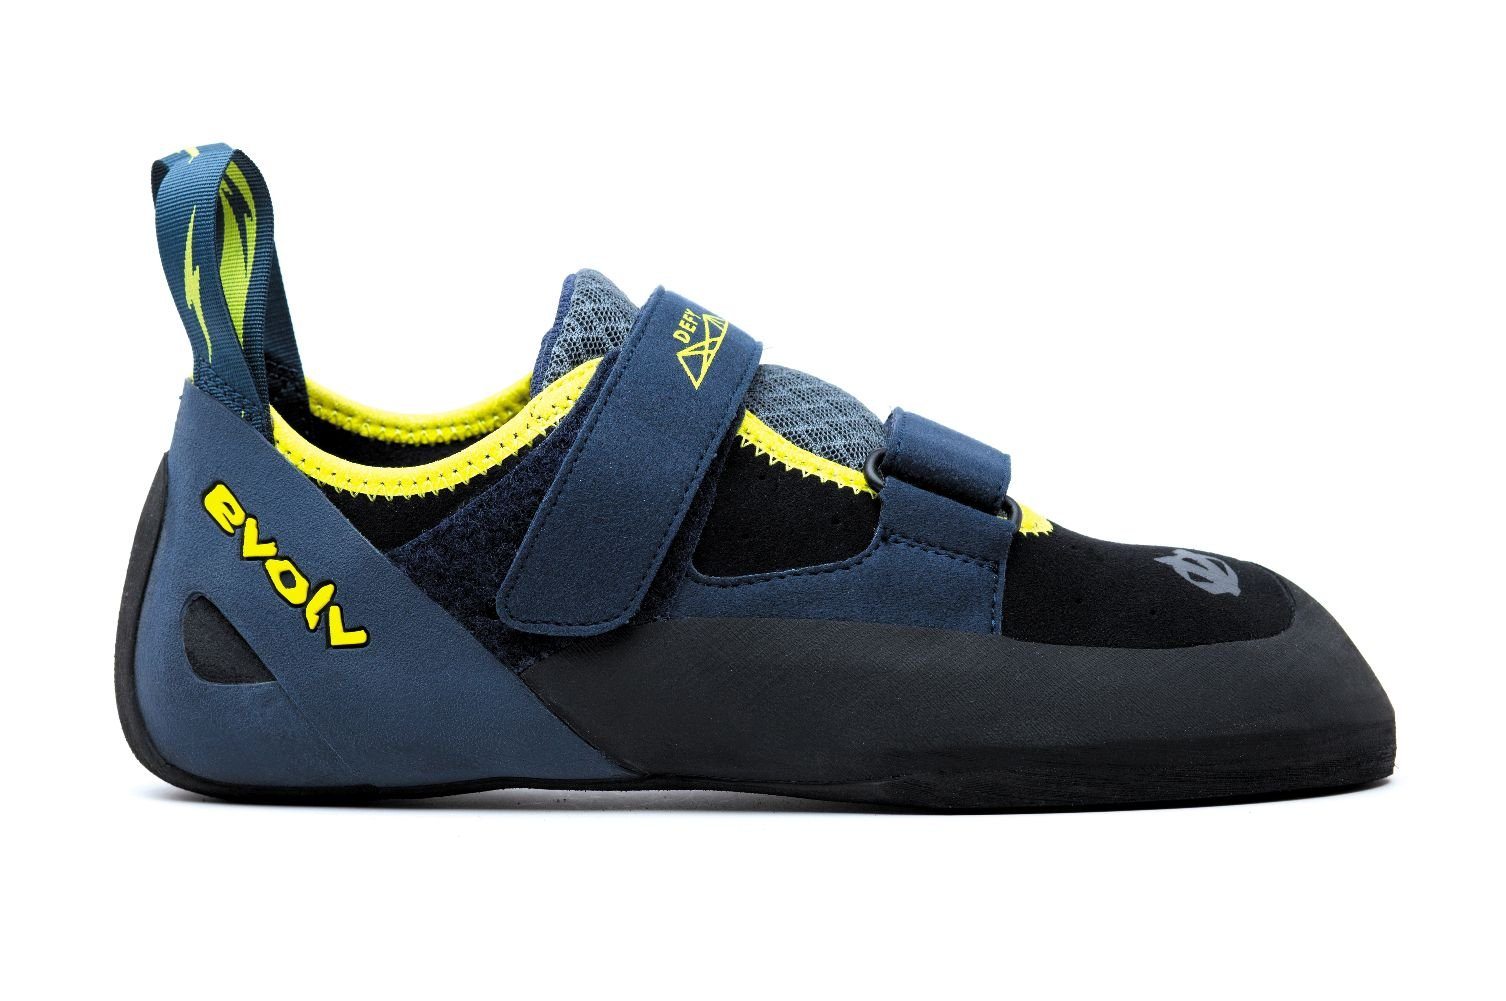 Evolv Defy Climbing Shoe - Black/Sulphur 10 by Evolv